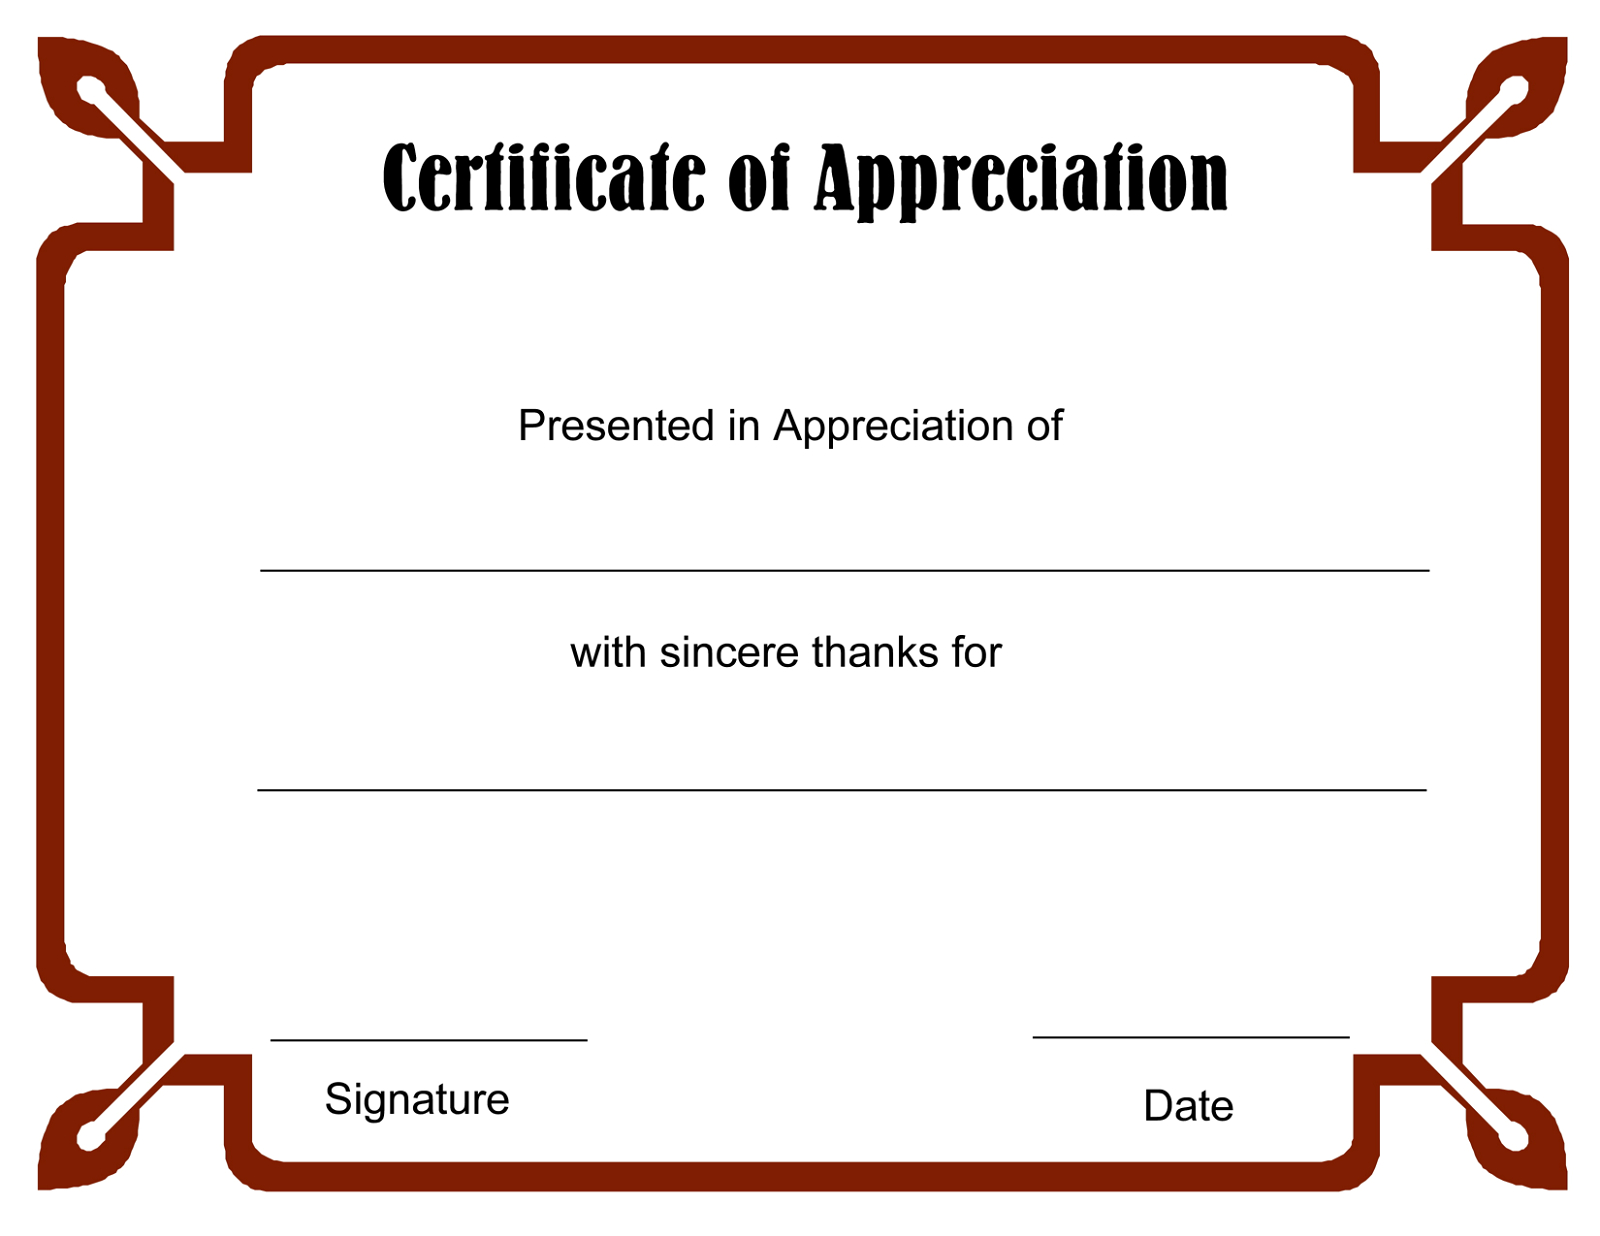 Blank Certificate Templates To Print | Activity Shelter - Free Printable Reward Certificates